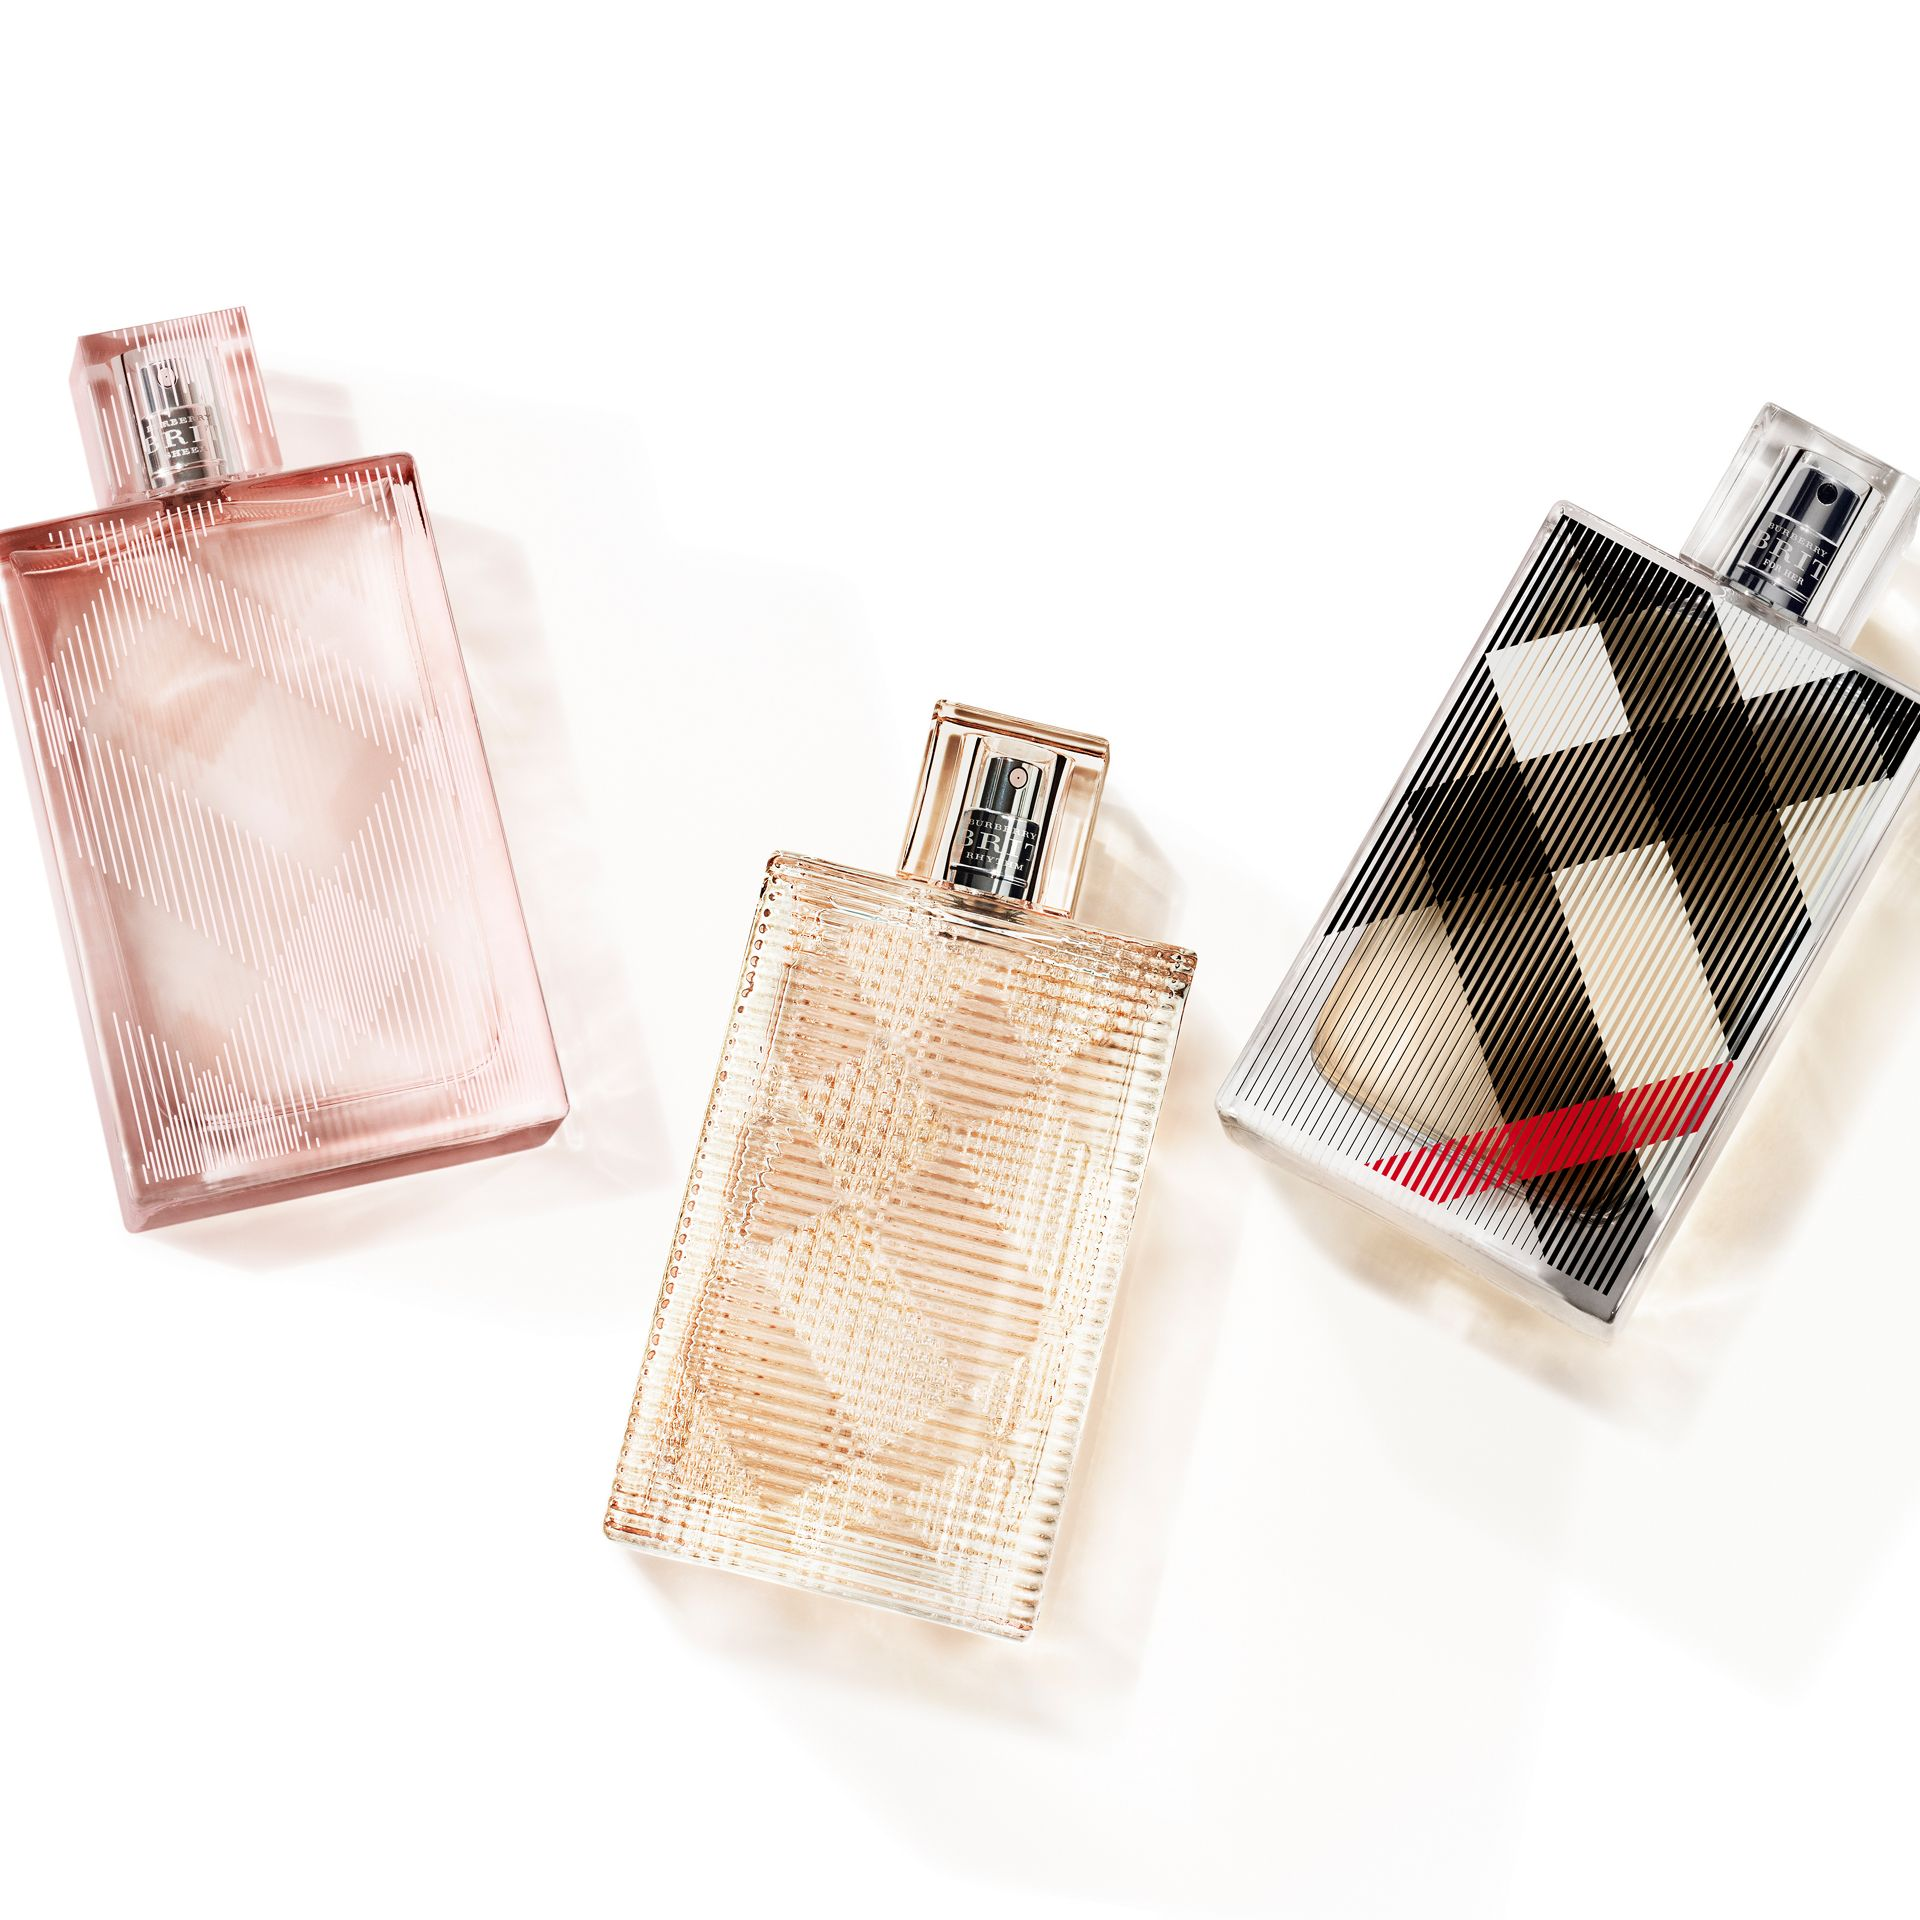 Eau de Toilette Burberry Brit for Her 50 ml - Femme | Burberry Canada - photo de la galerie 2